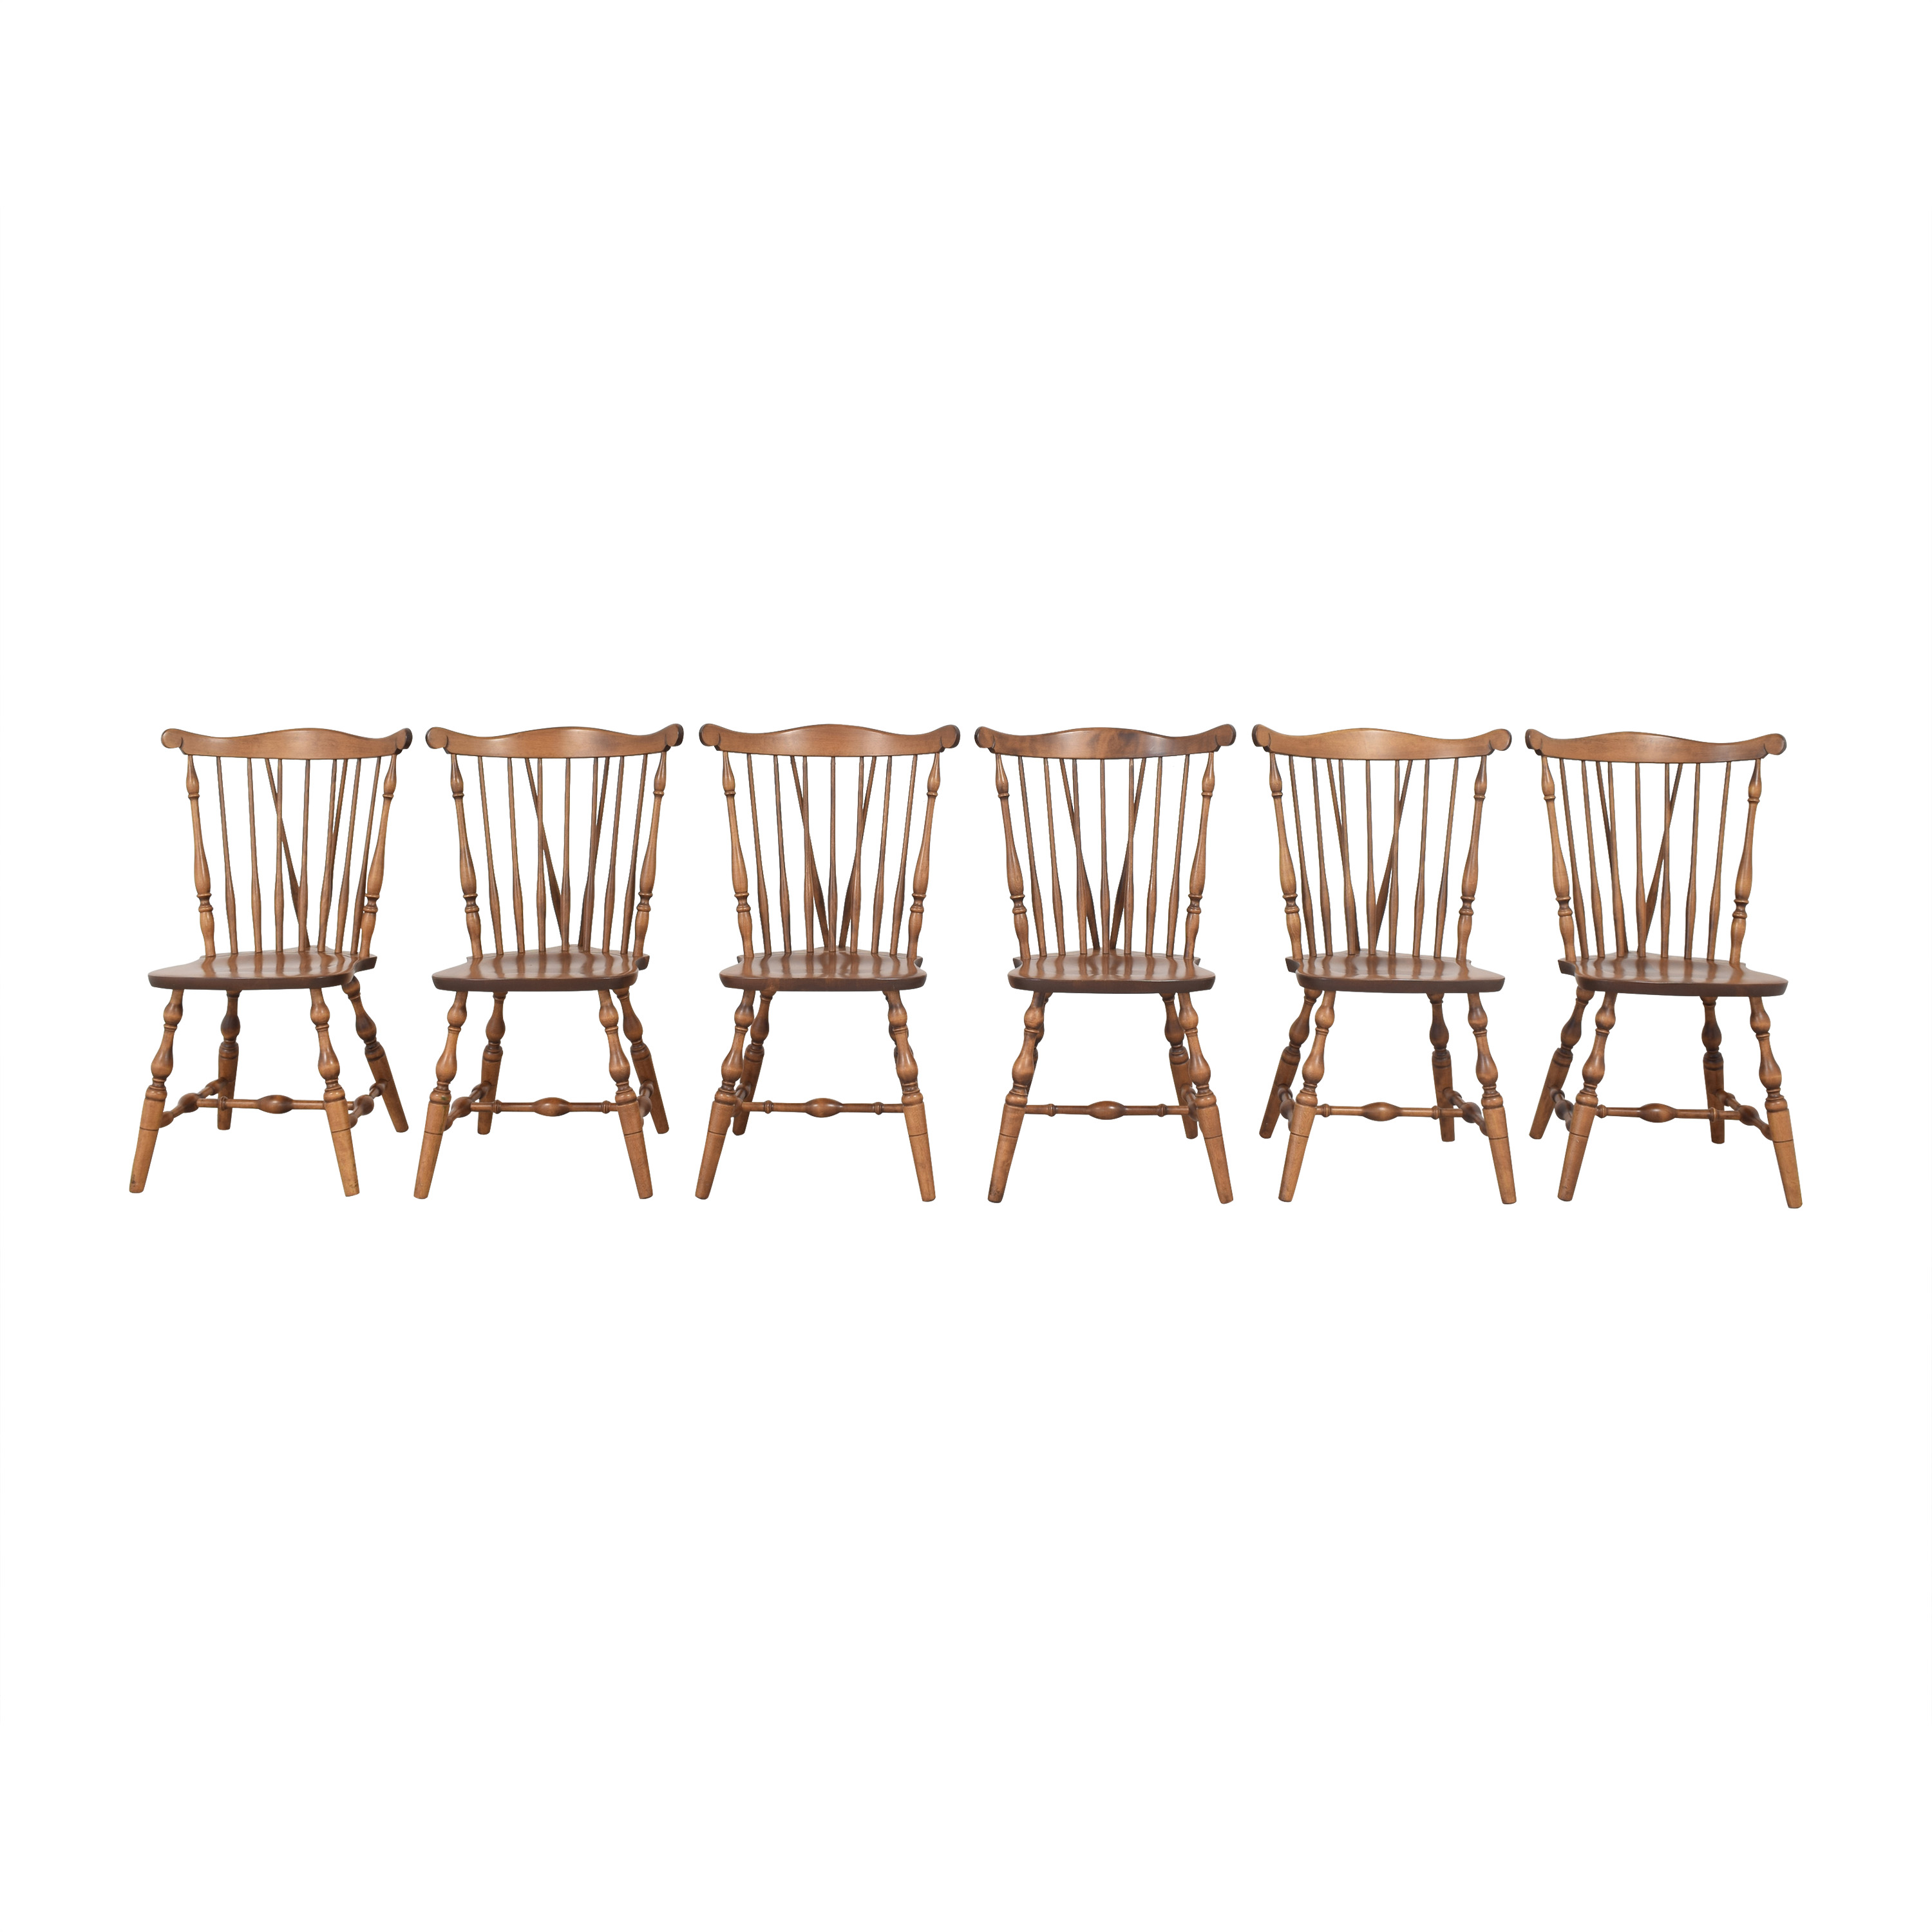 S. Bent & Bros S. Bent & Bros Brace Back Windsor Dining Side Chairs pa